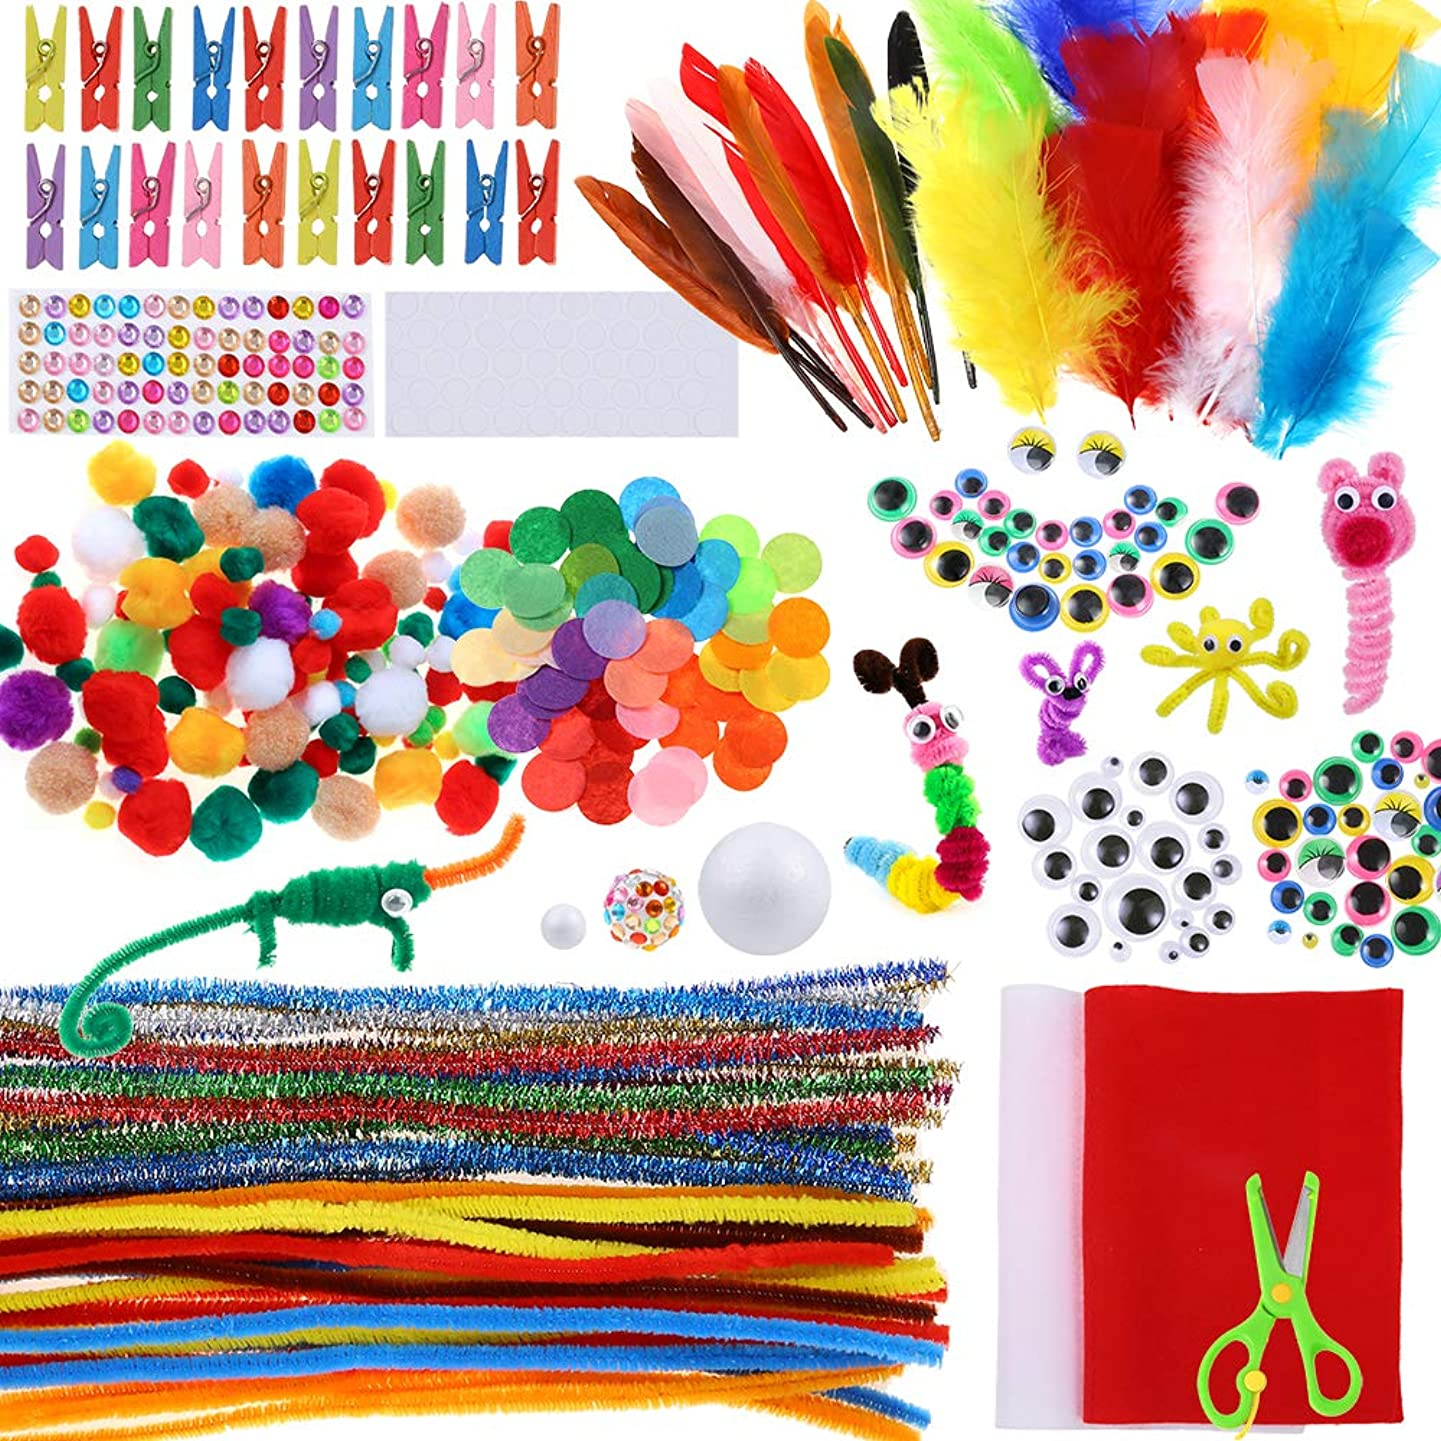 Caydo Assorted Pipe Cleaner Craft Kit Chenille Stems Pom Poms Wiggle Googly Eyes Feather and Felt, Foam Balls for Kids DIY Art Supplies Set?